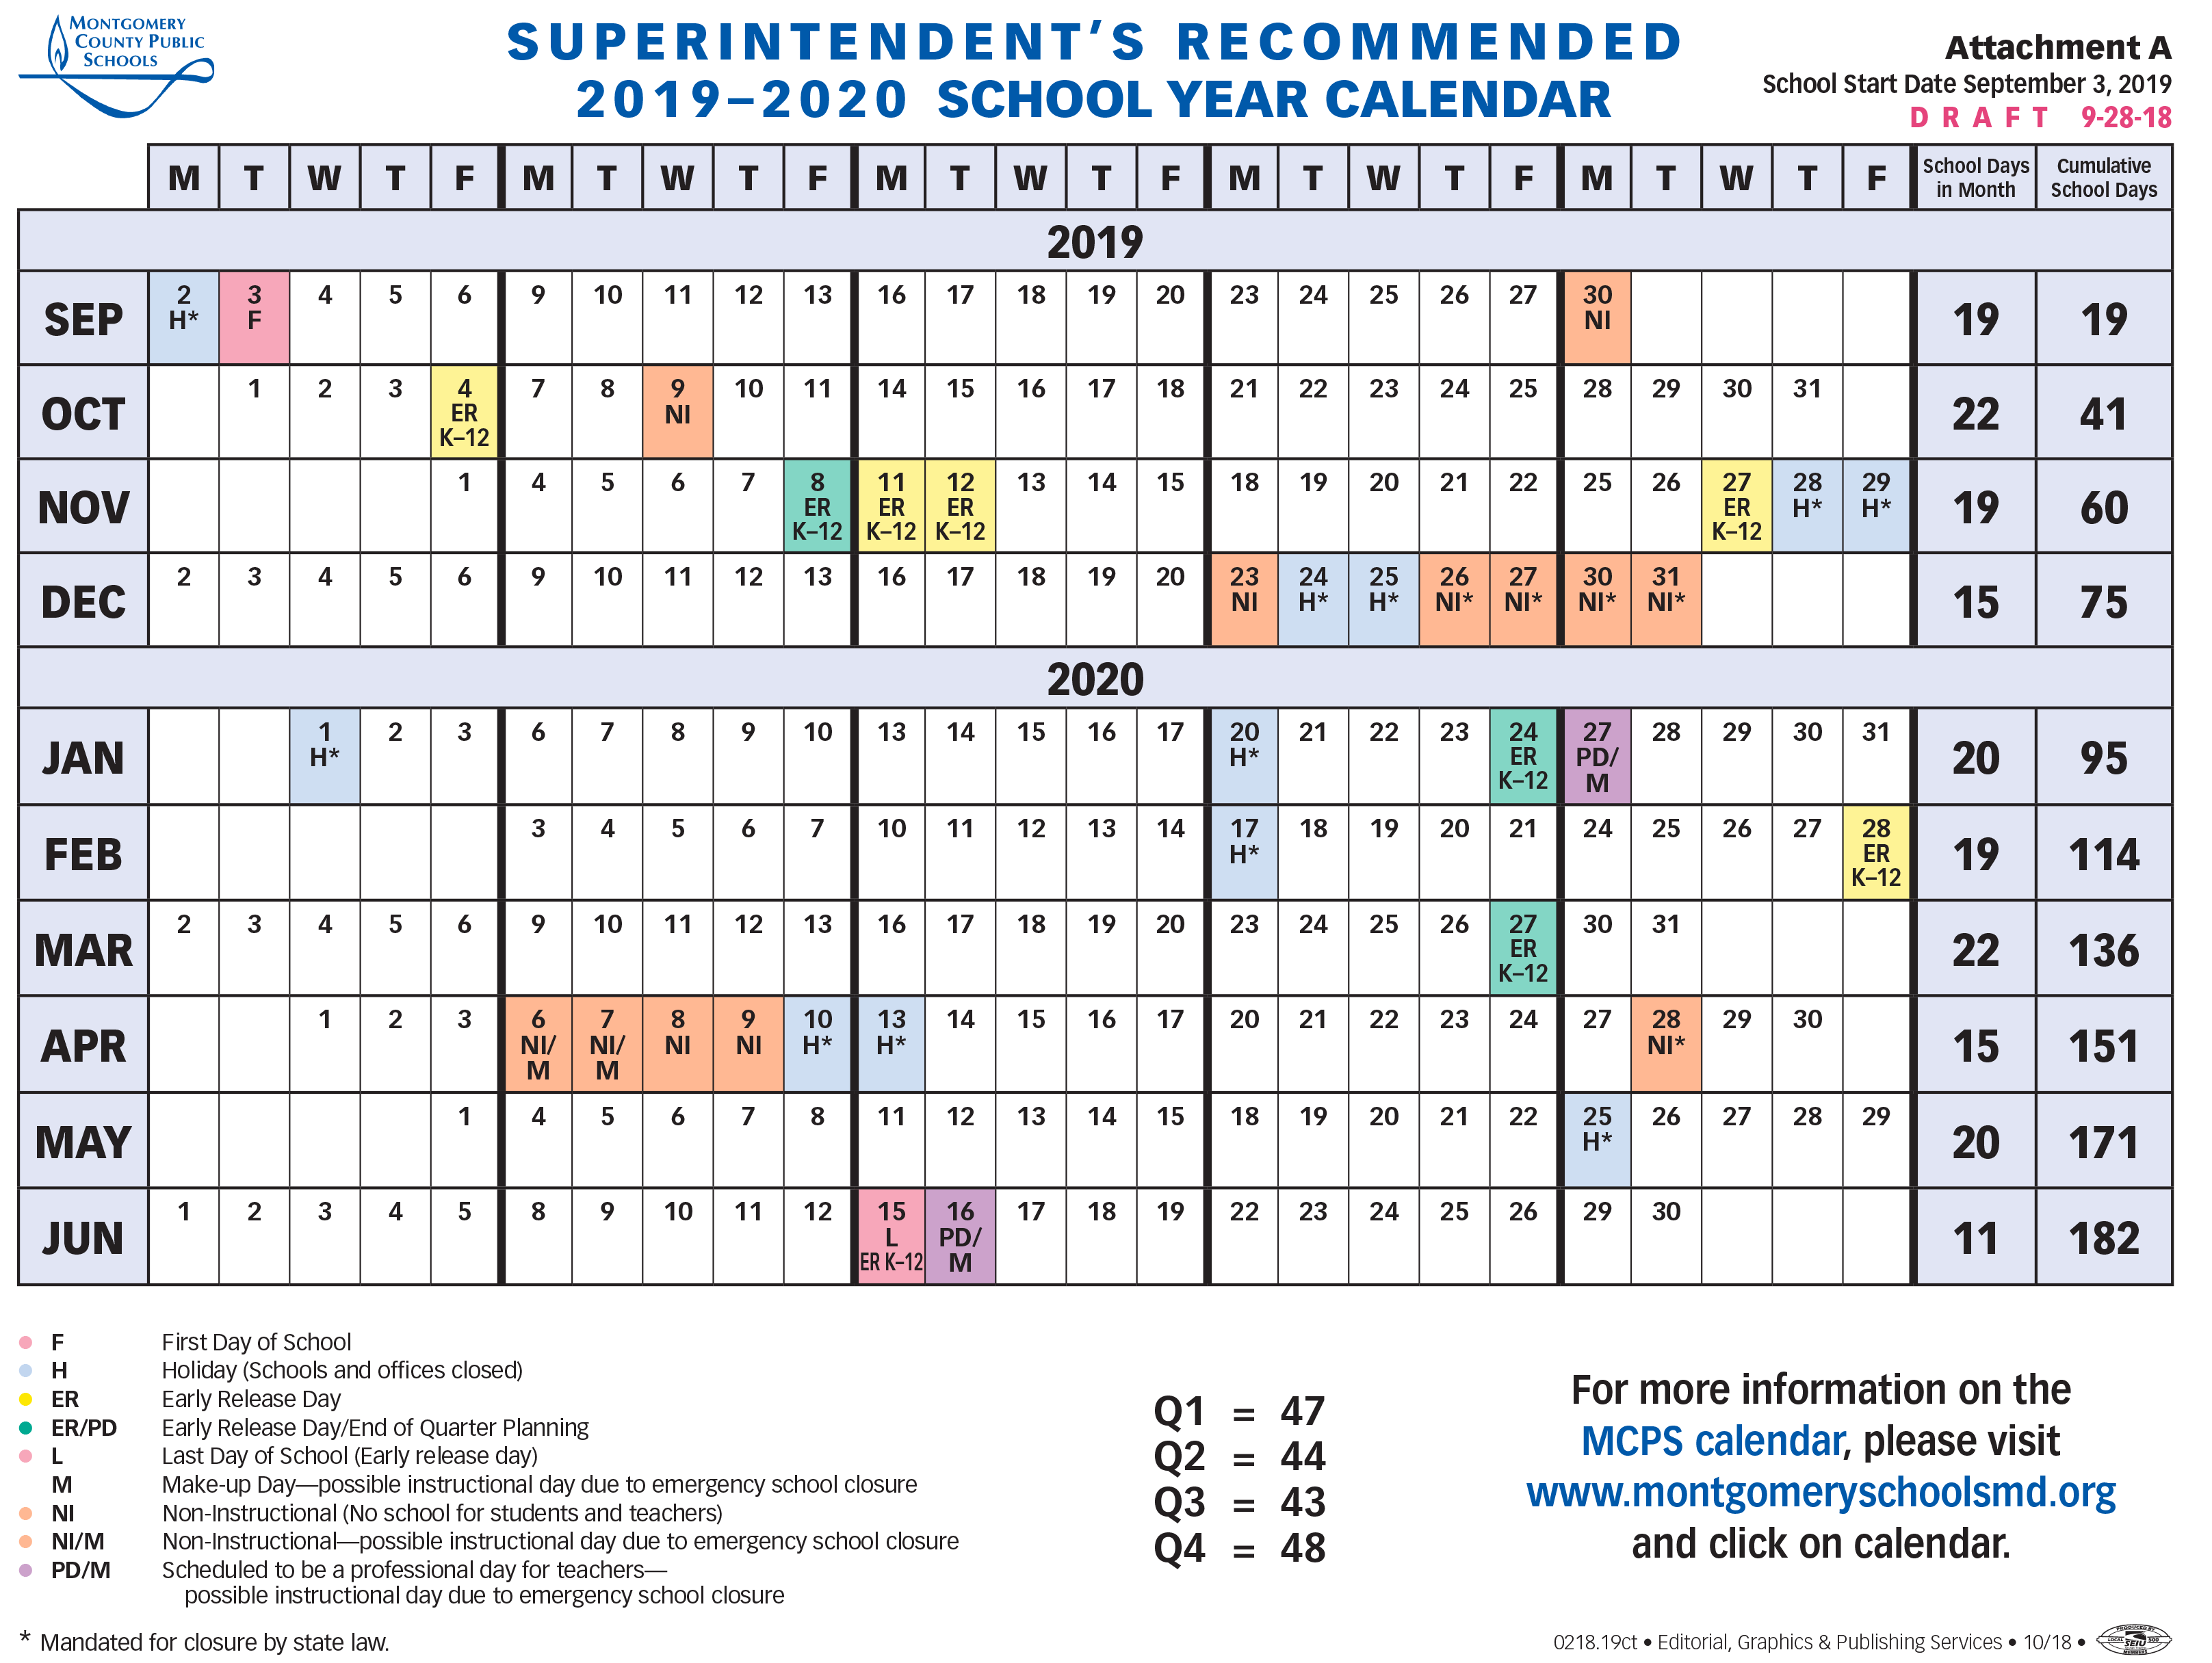 Calendar Sept 2020.Board Of Education Sets Calendar For 2019 2020 School Year